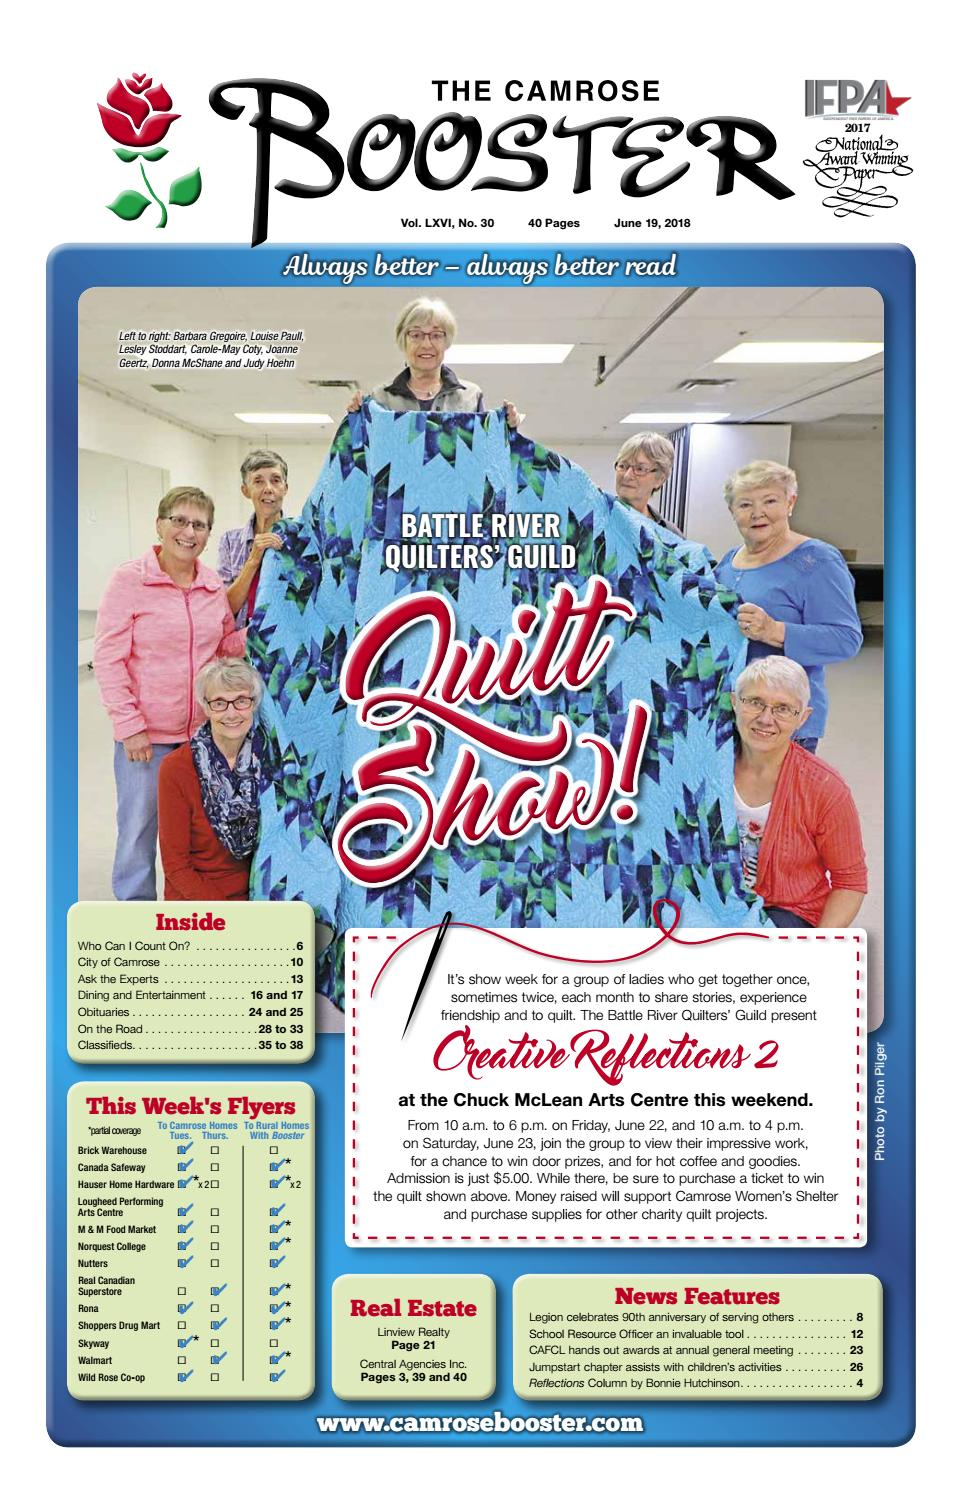 June 19 2018 Camrose Booster By The Camrose Booster Issuu